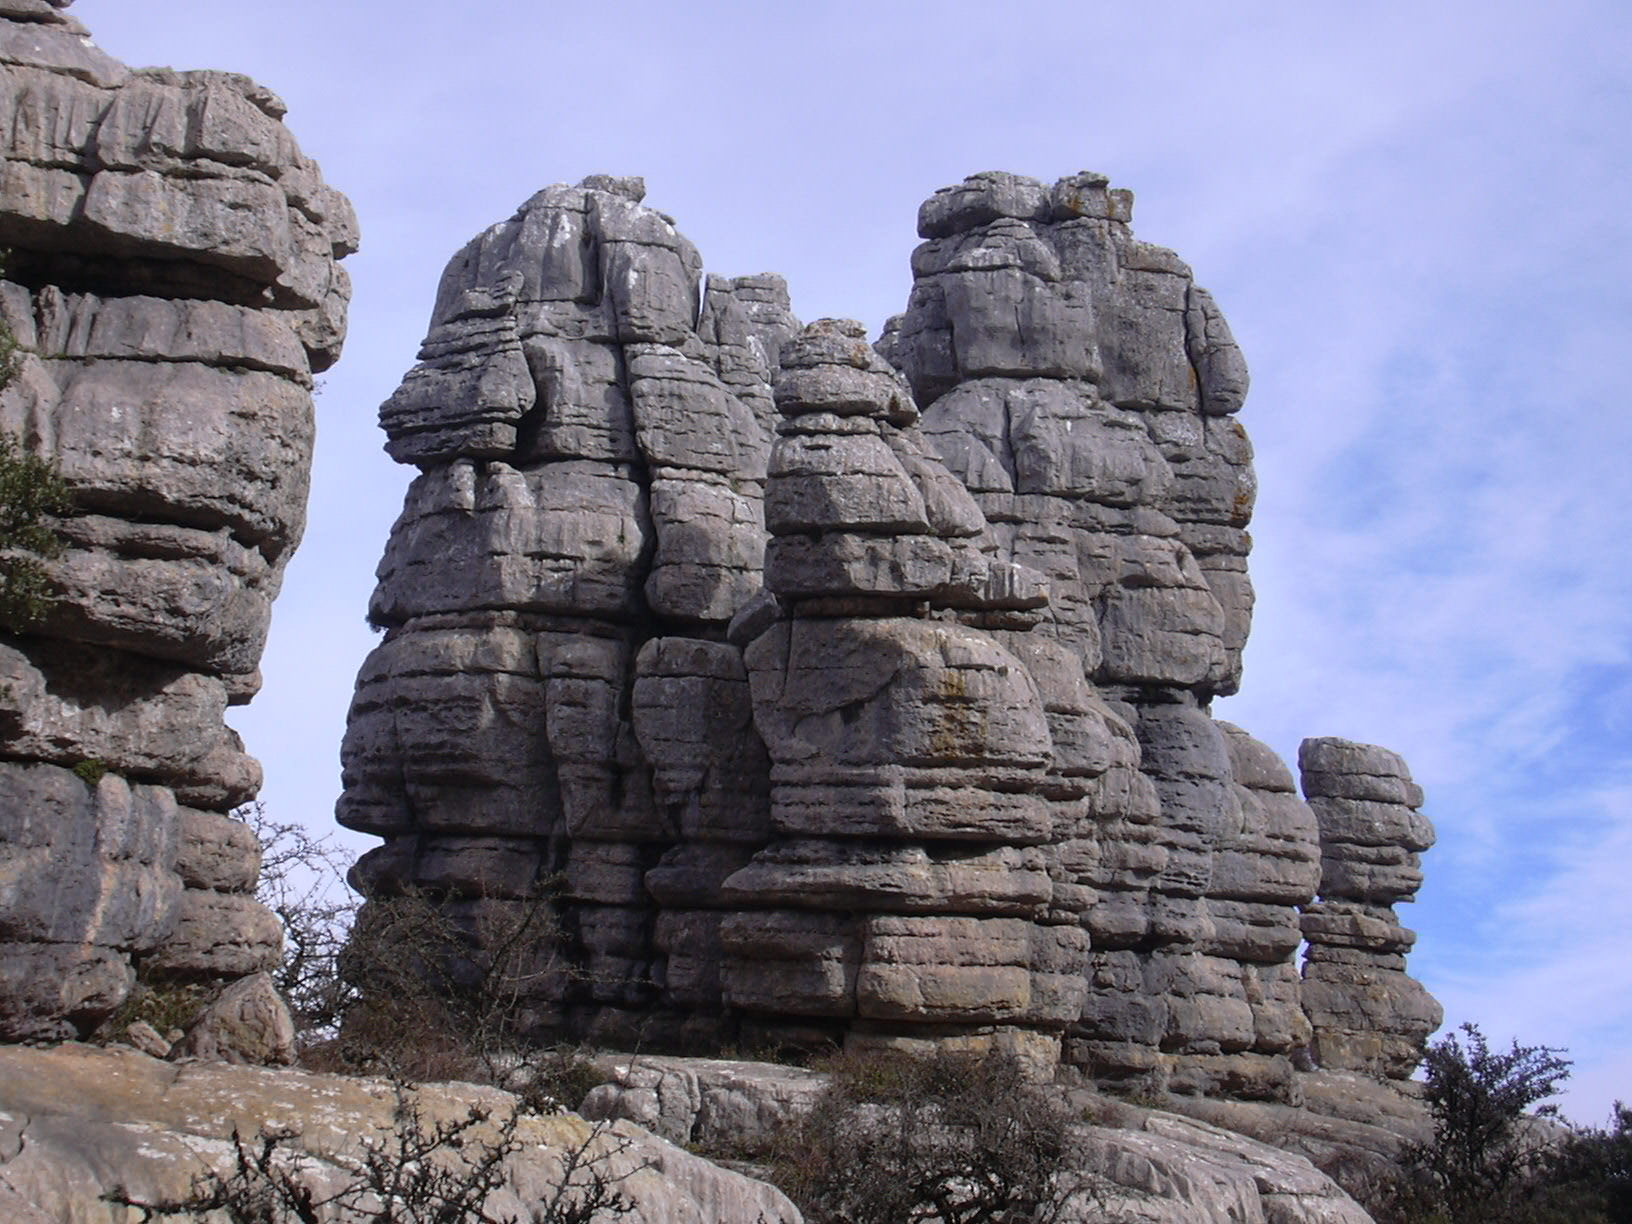 El Torcal rocks overview 15